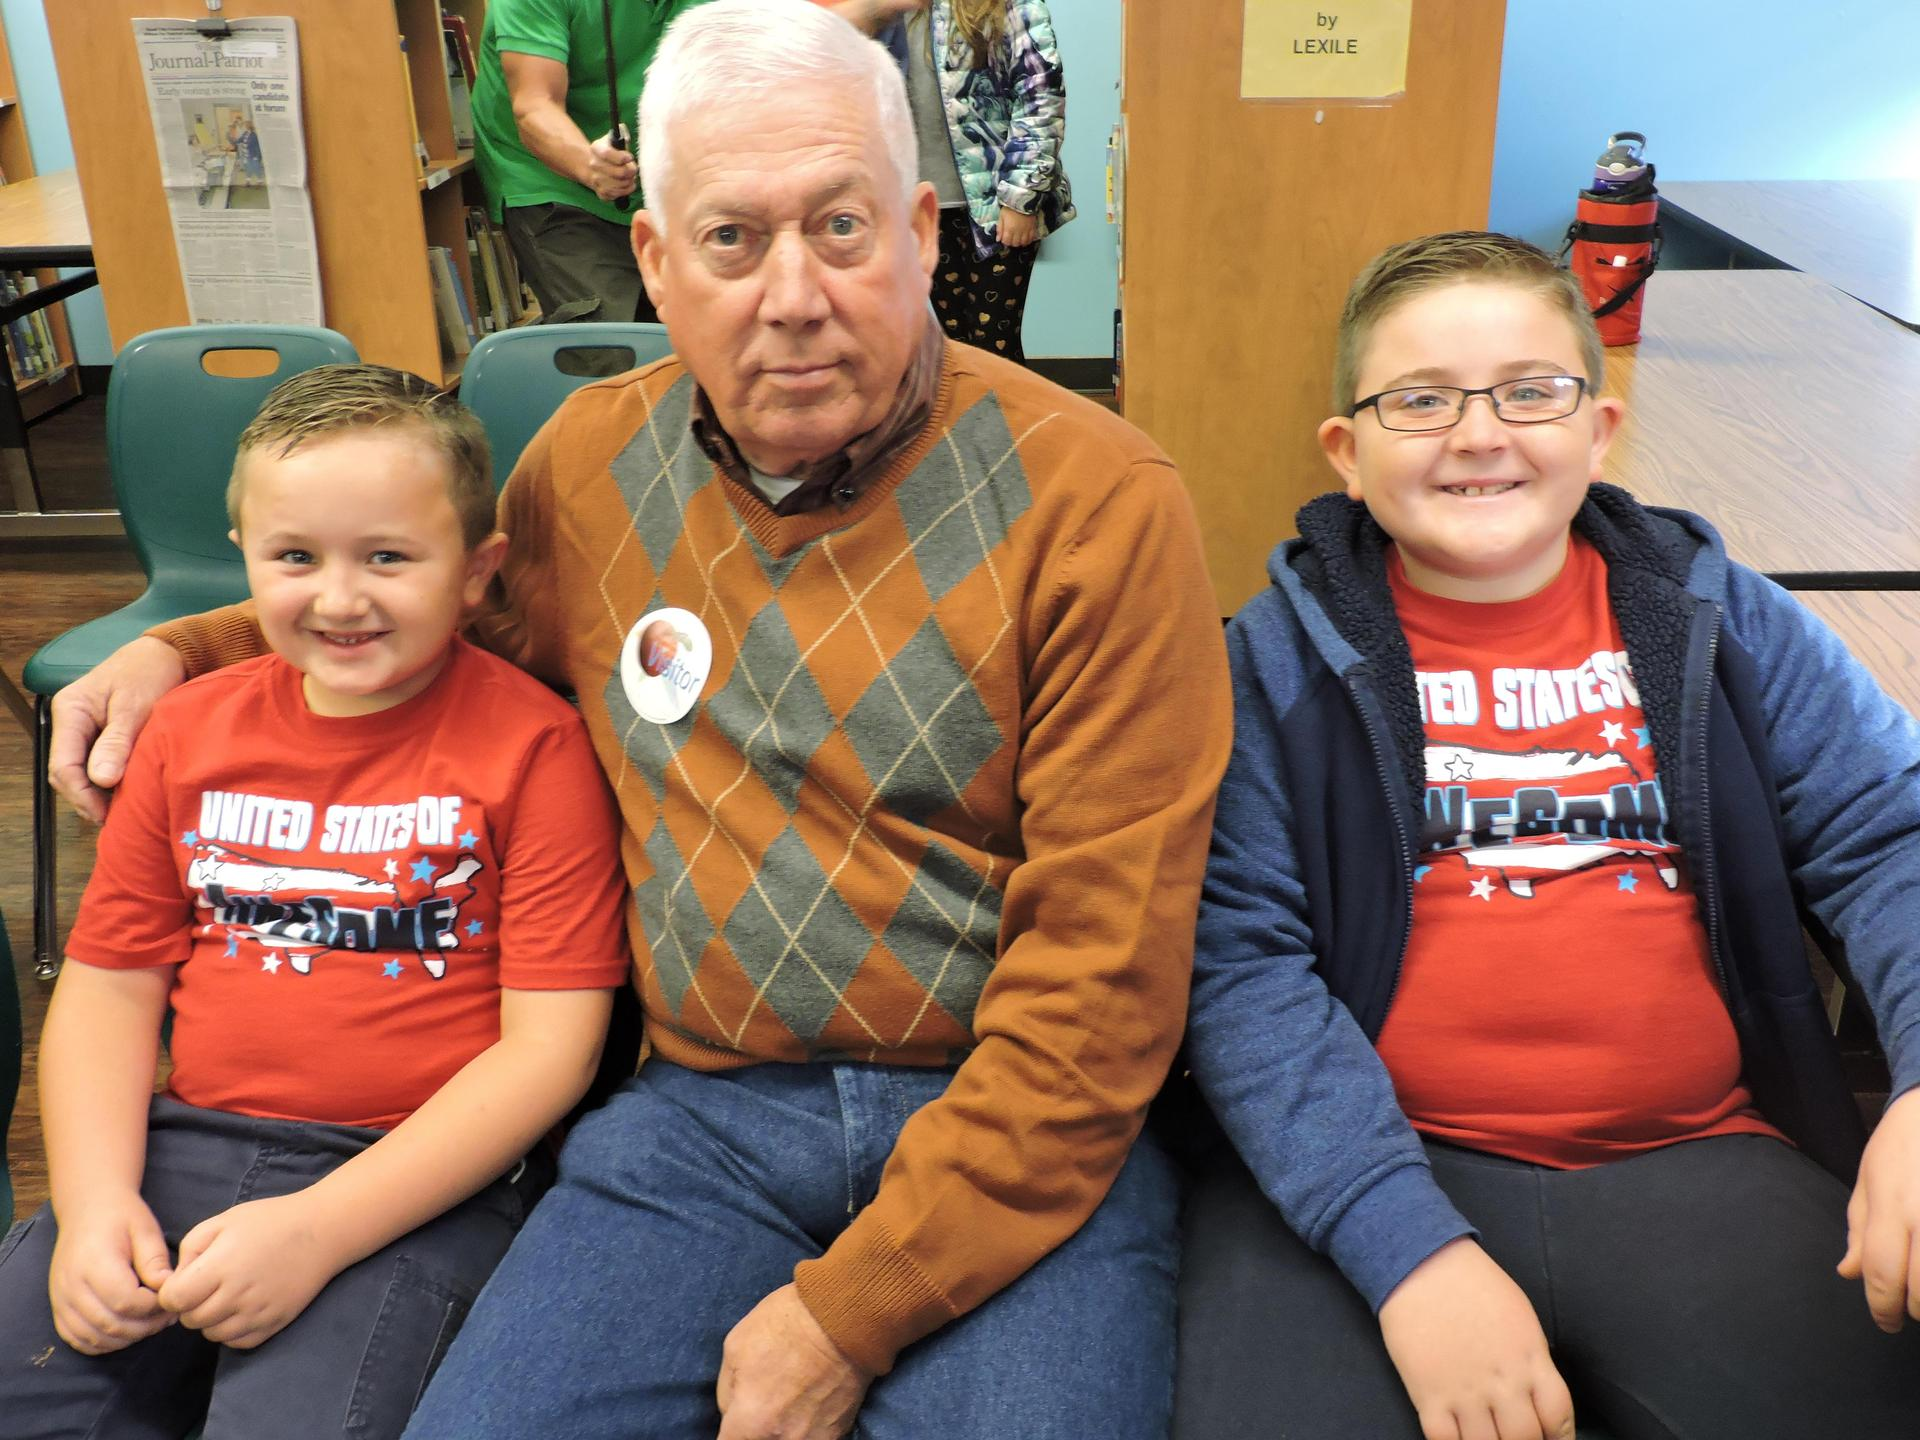 Veteran poses with two students.